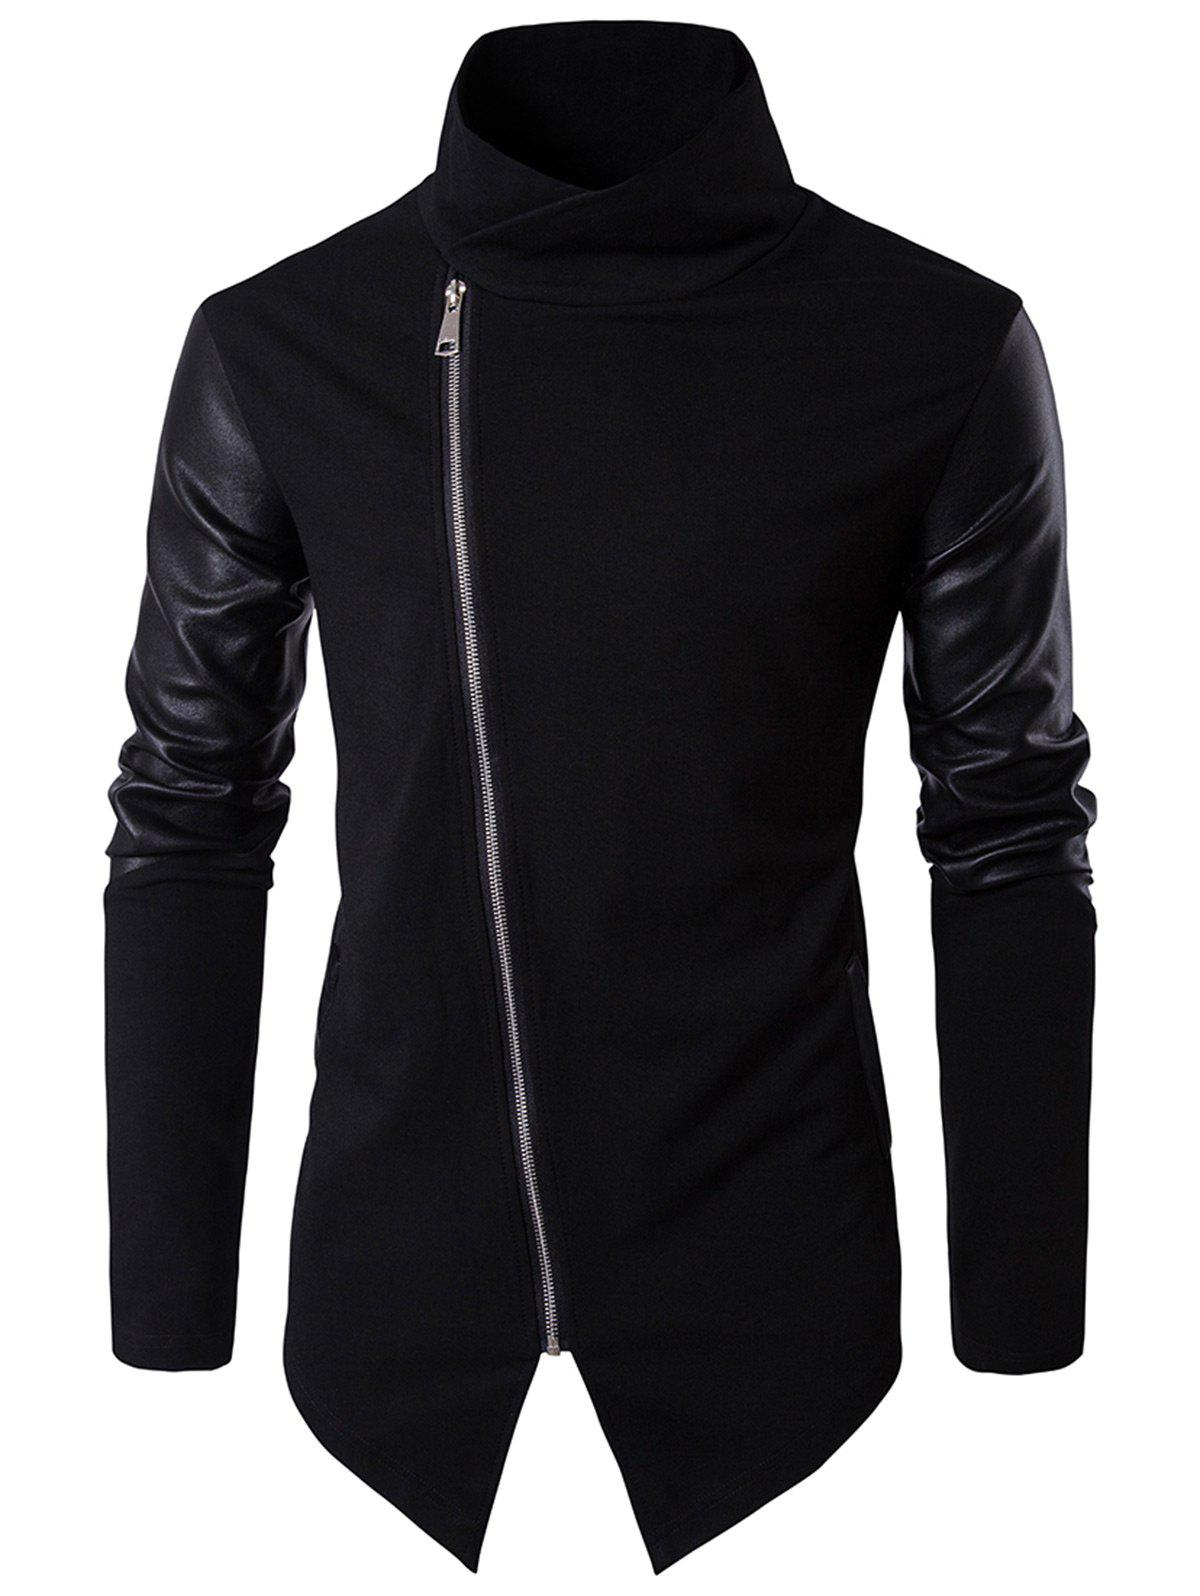 Faux Leather Panel Asymmetrical Zip Pullover TopMEN<br><br>Size: S; Color: BLACK; Material: Cotton,Faux Leather,Polyester; Shirt Length: Regular; Sleeve Length: Full; Style: Fashion; Weight: 0.6000kg; Package Contents: 1 x Sweatshirt;